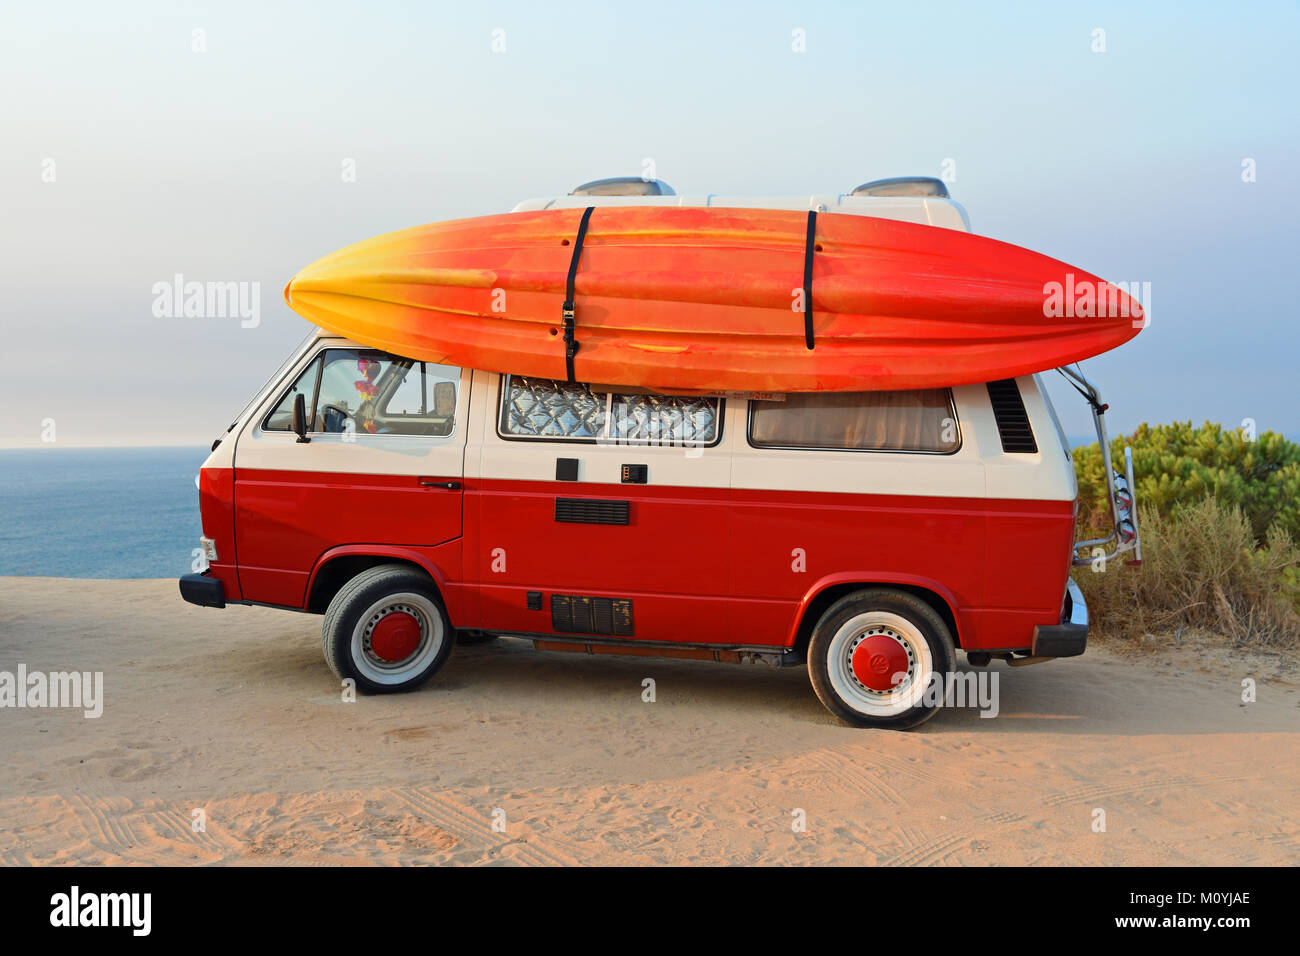 Vw Bus With Kayak At Praia Da Marinha South Coast Algarve Portugal